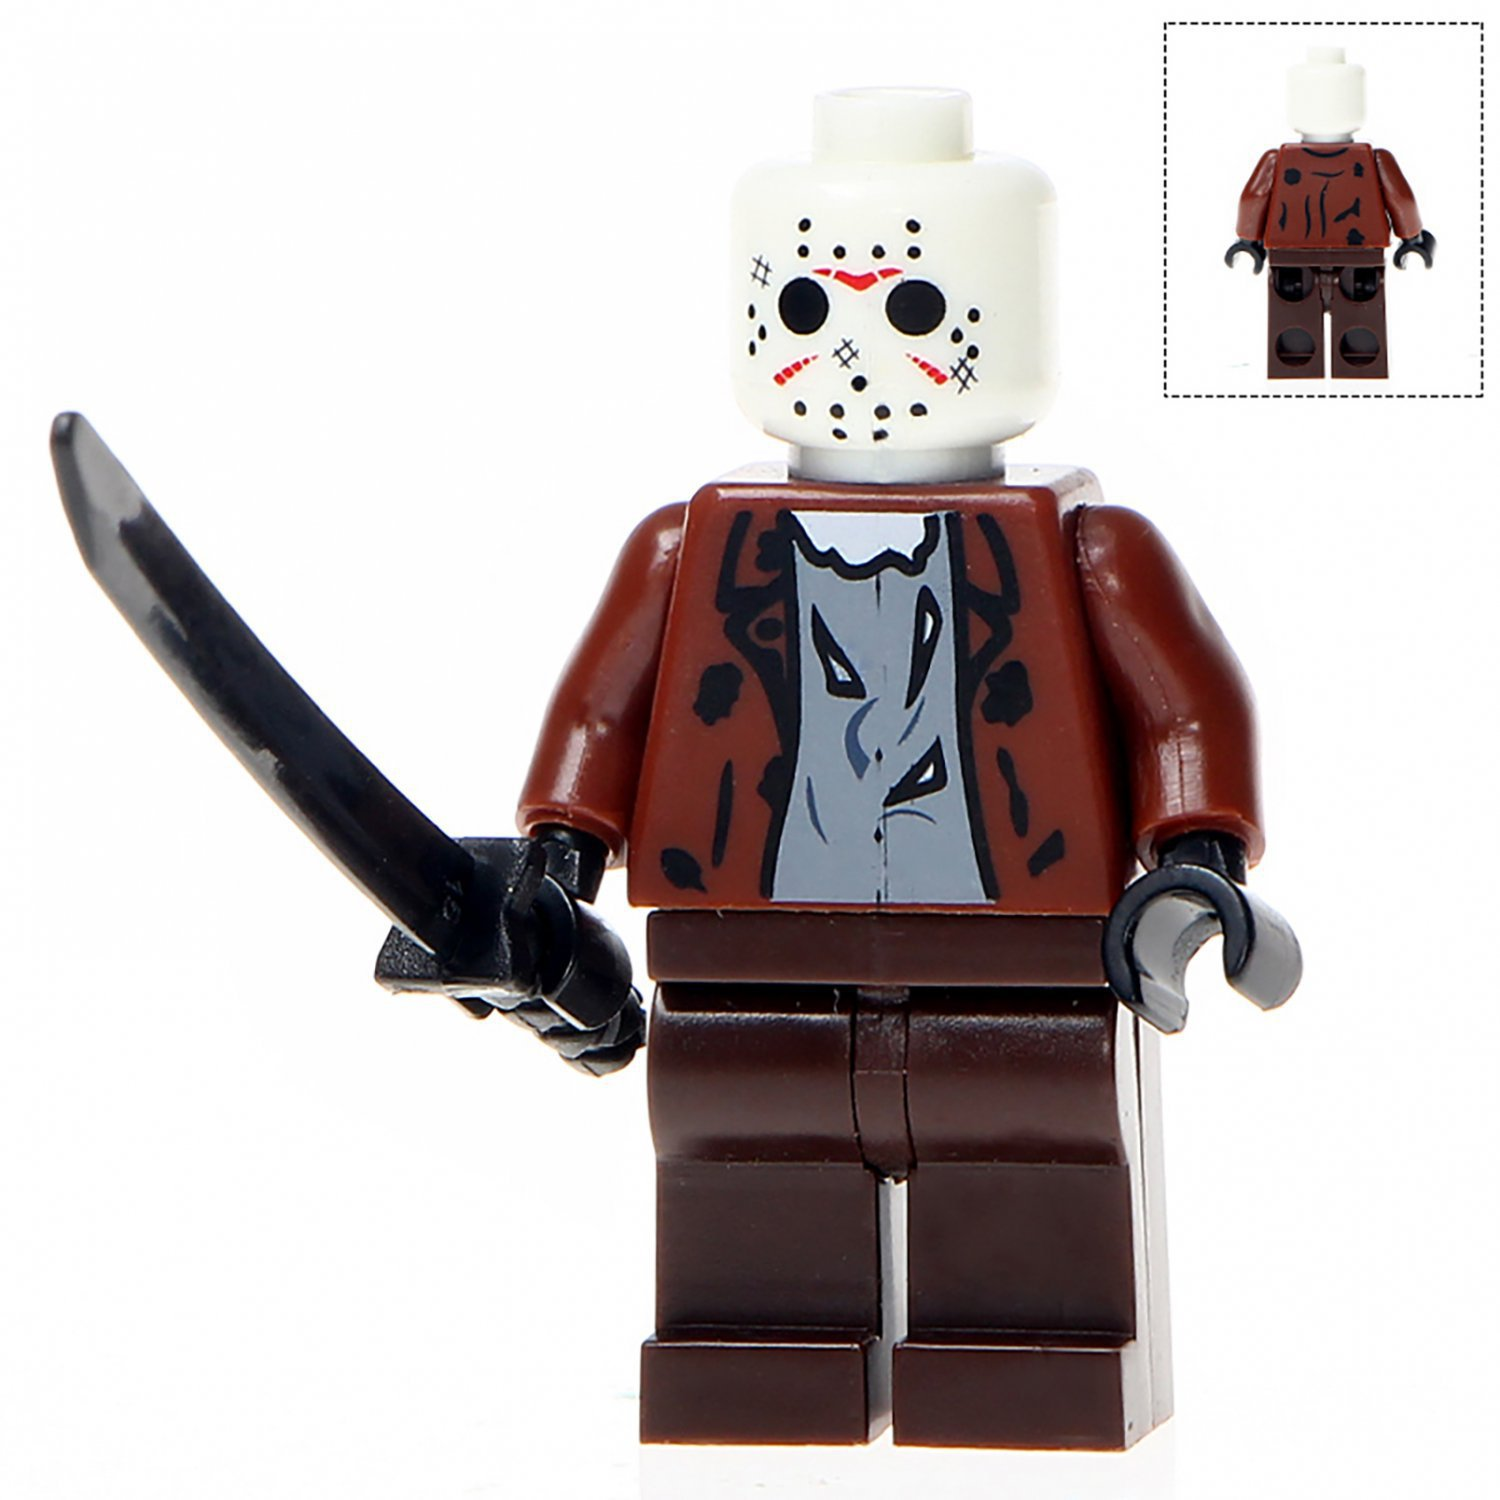 Minifigure Jason Voorhees Friday the 13th Horror Lego compatible Building Blocks Toys